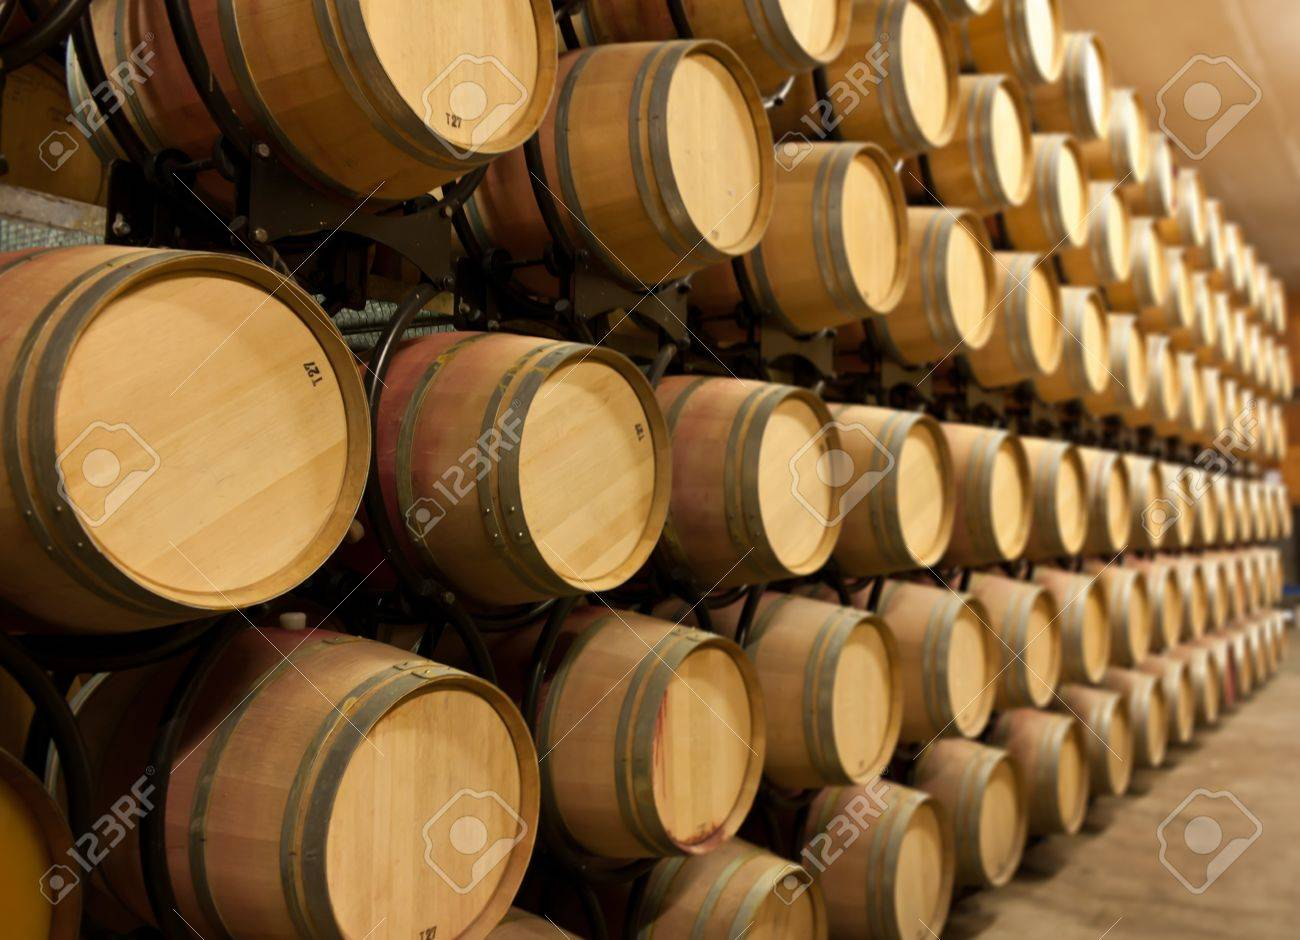 oak wine barrels. oak wine barrels stacked up in a winery aging room stock photo 7415780 t